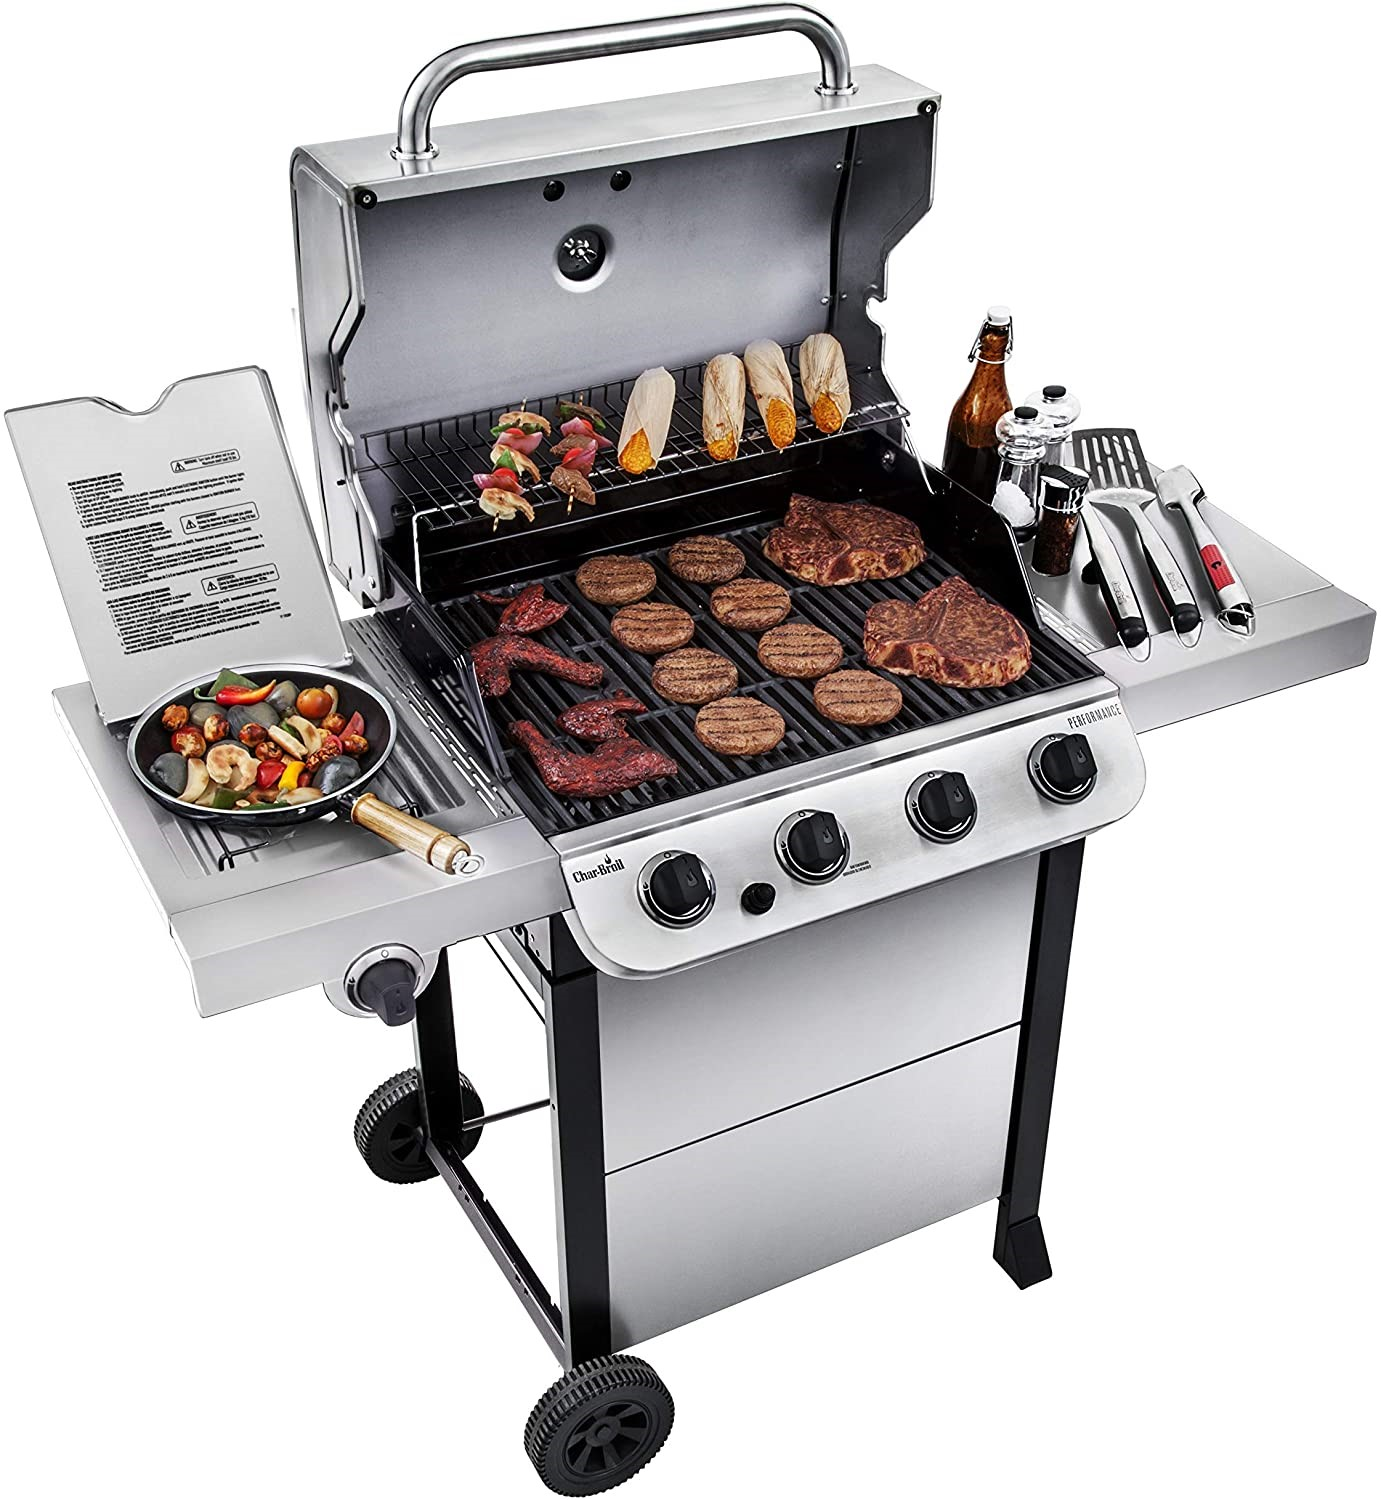 best char broil grill under 300